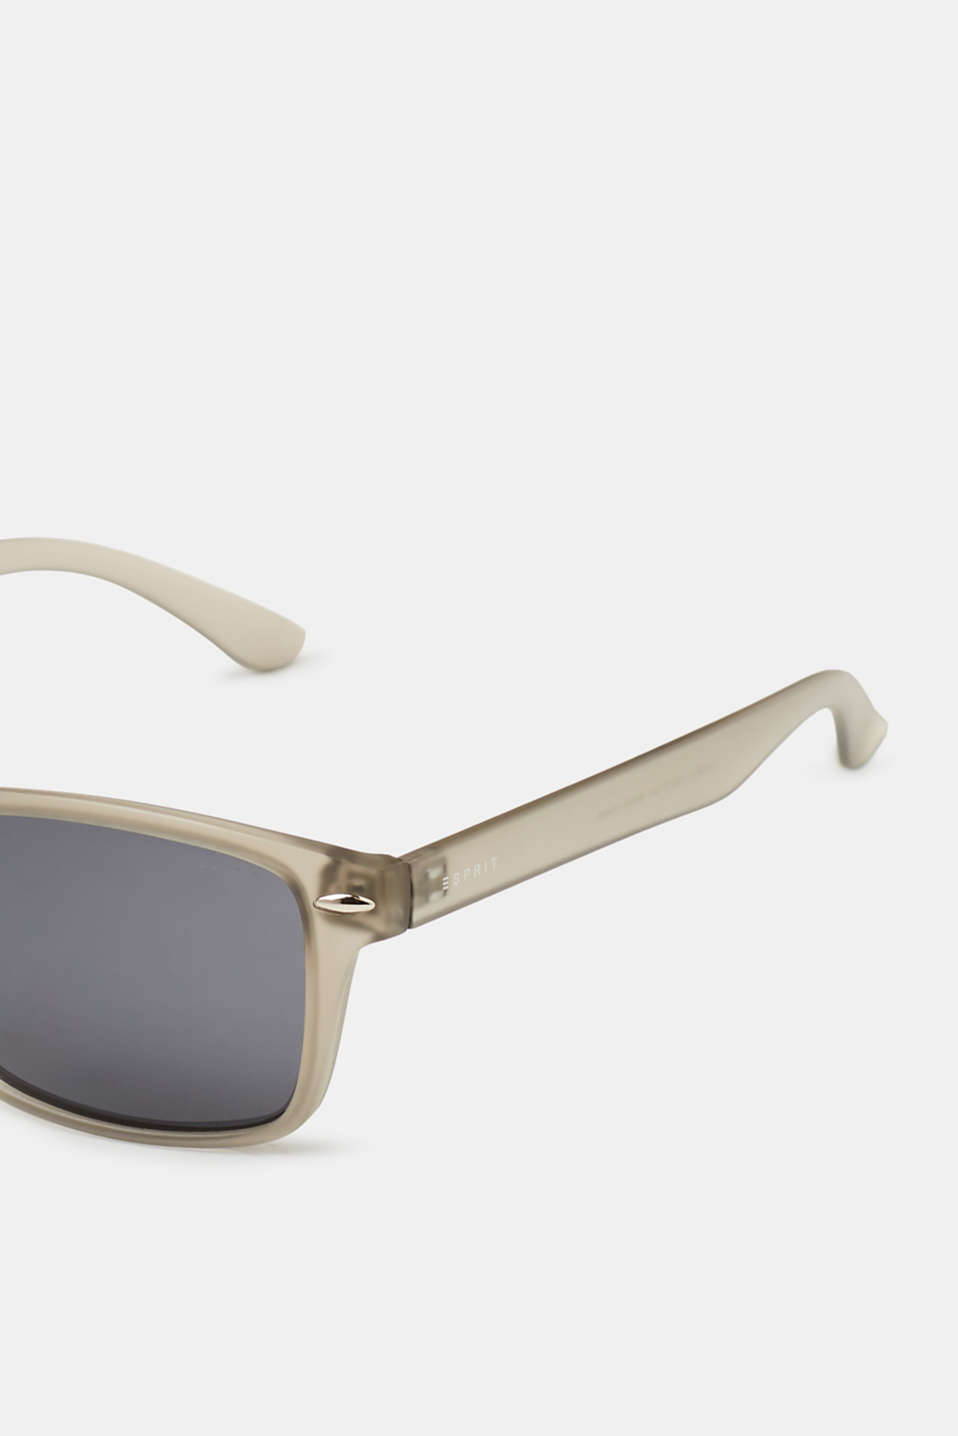 Mens sunglasses with matte frames